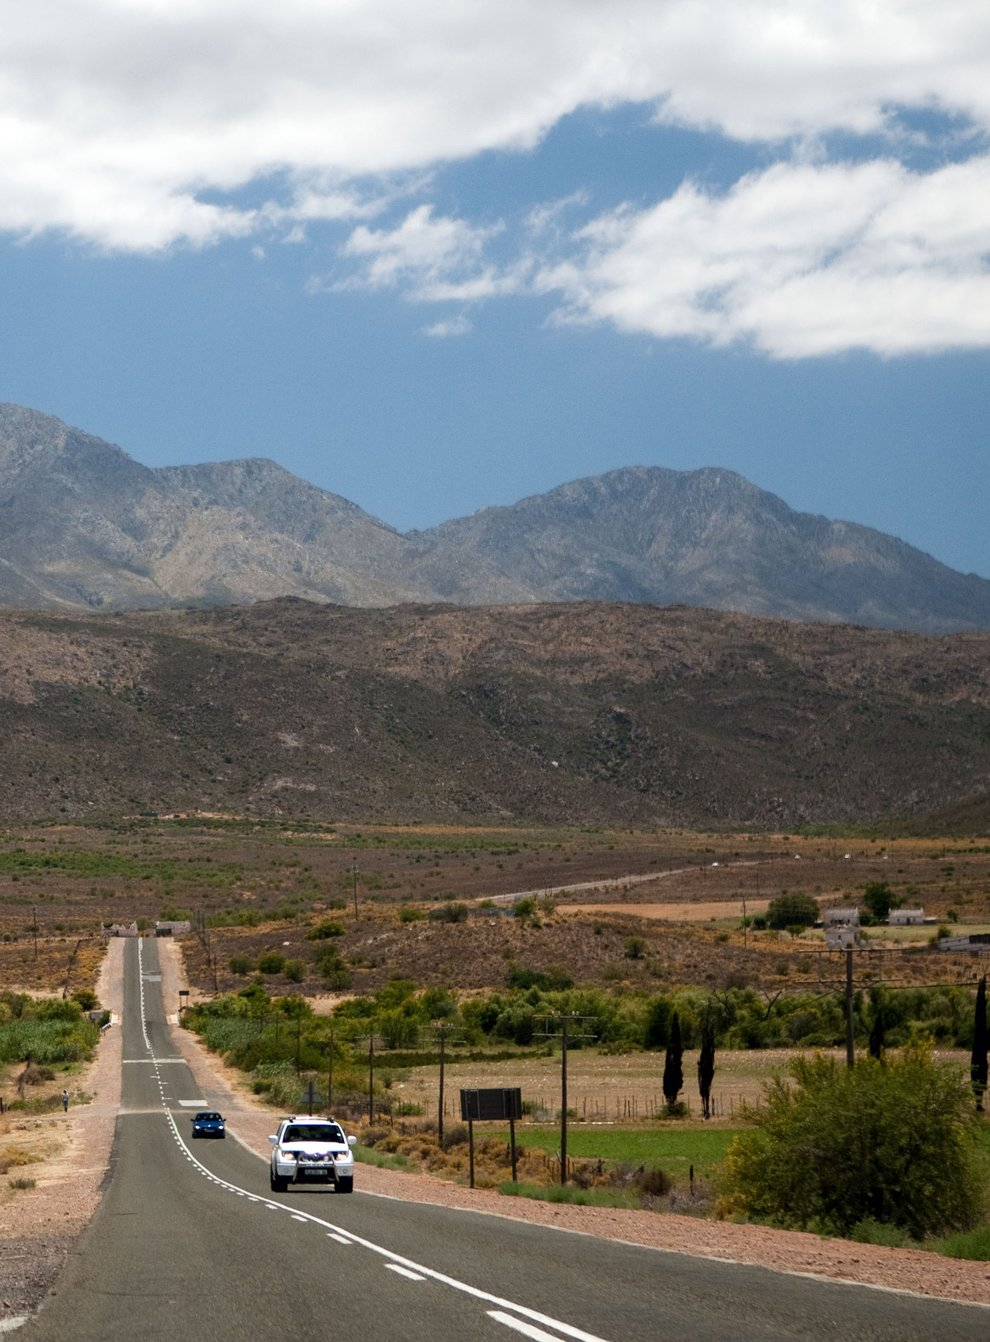 Views along Route 62, Garden Route, South Africa (Alamy/PA)